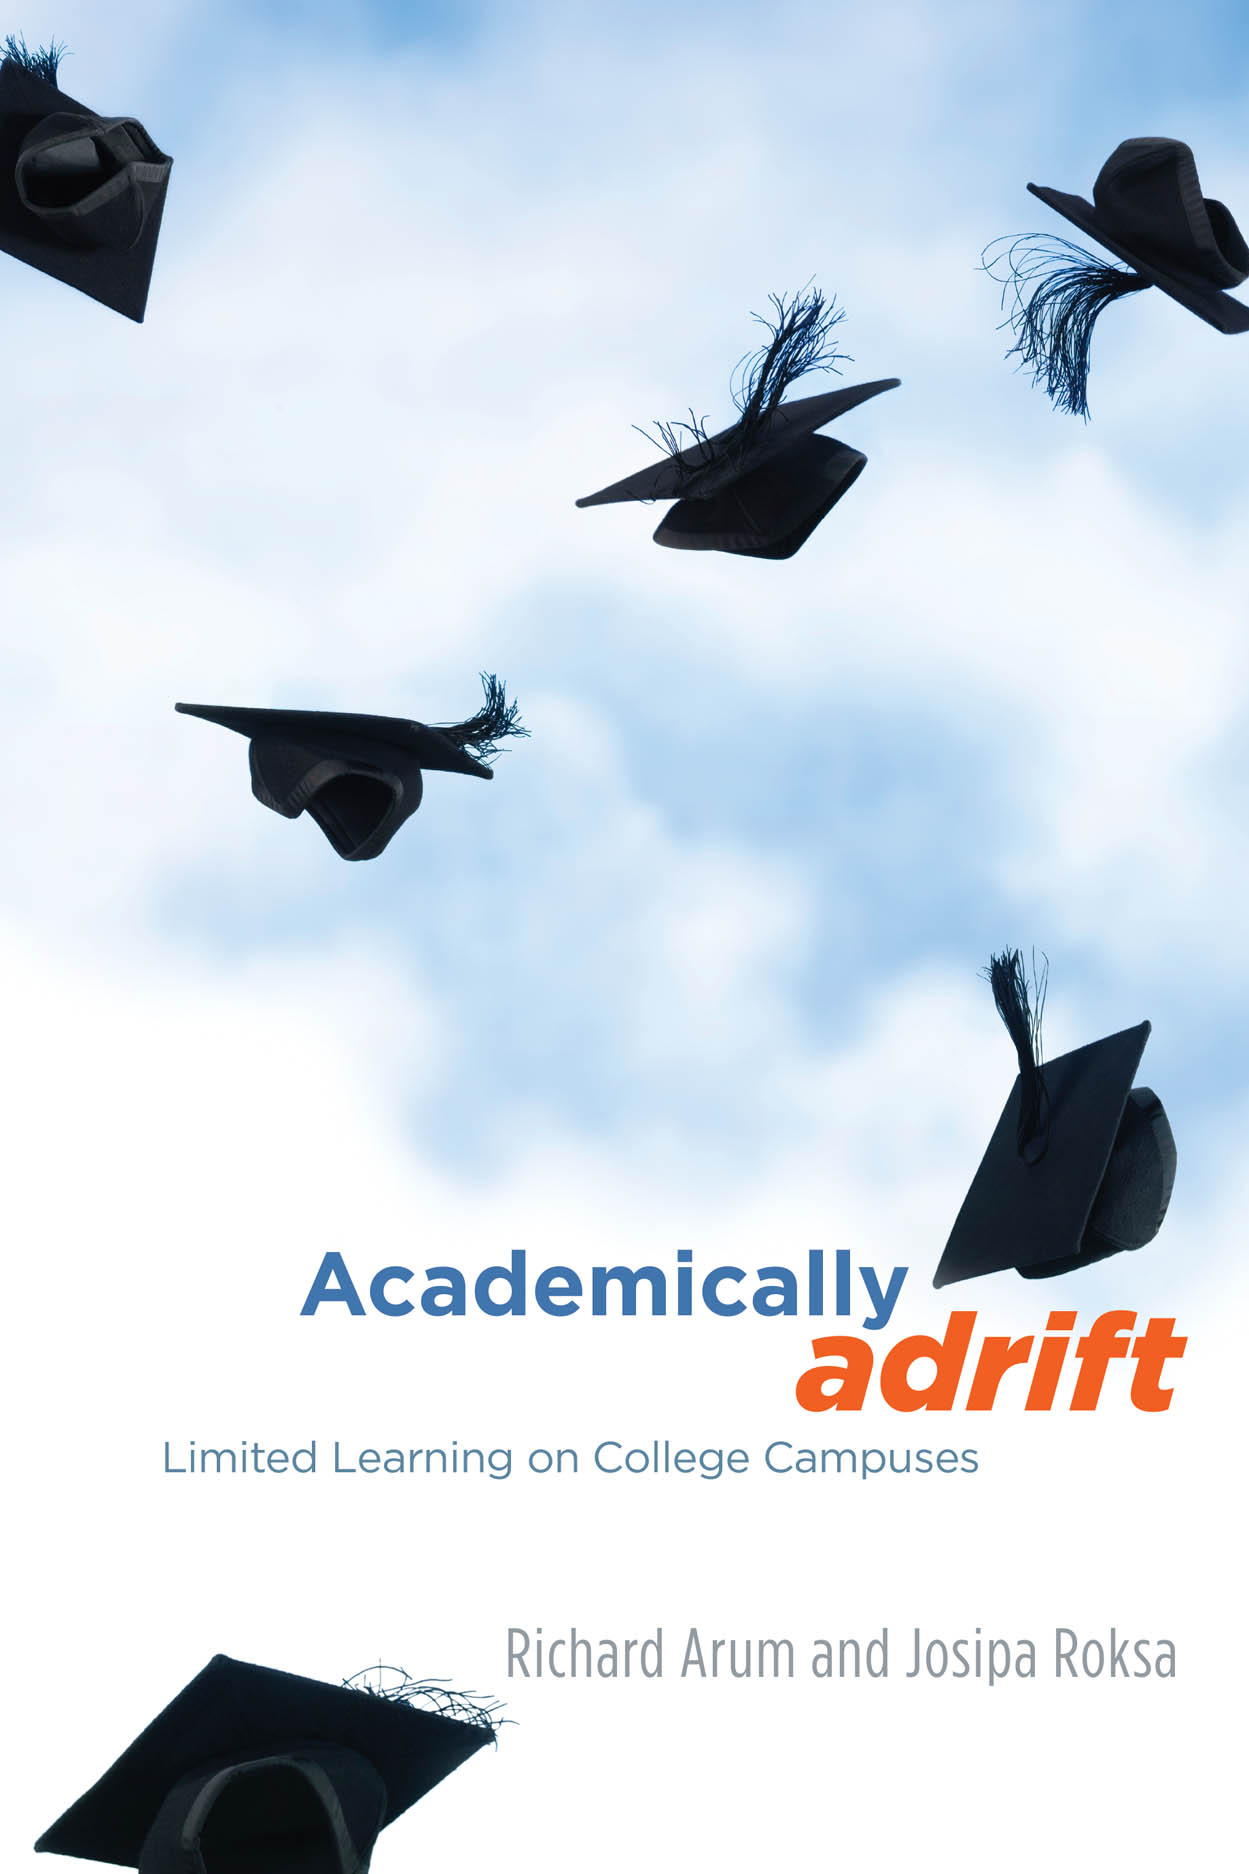 (Academically) Adrift on the Web